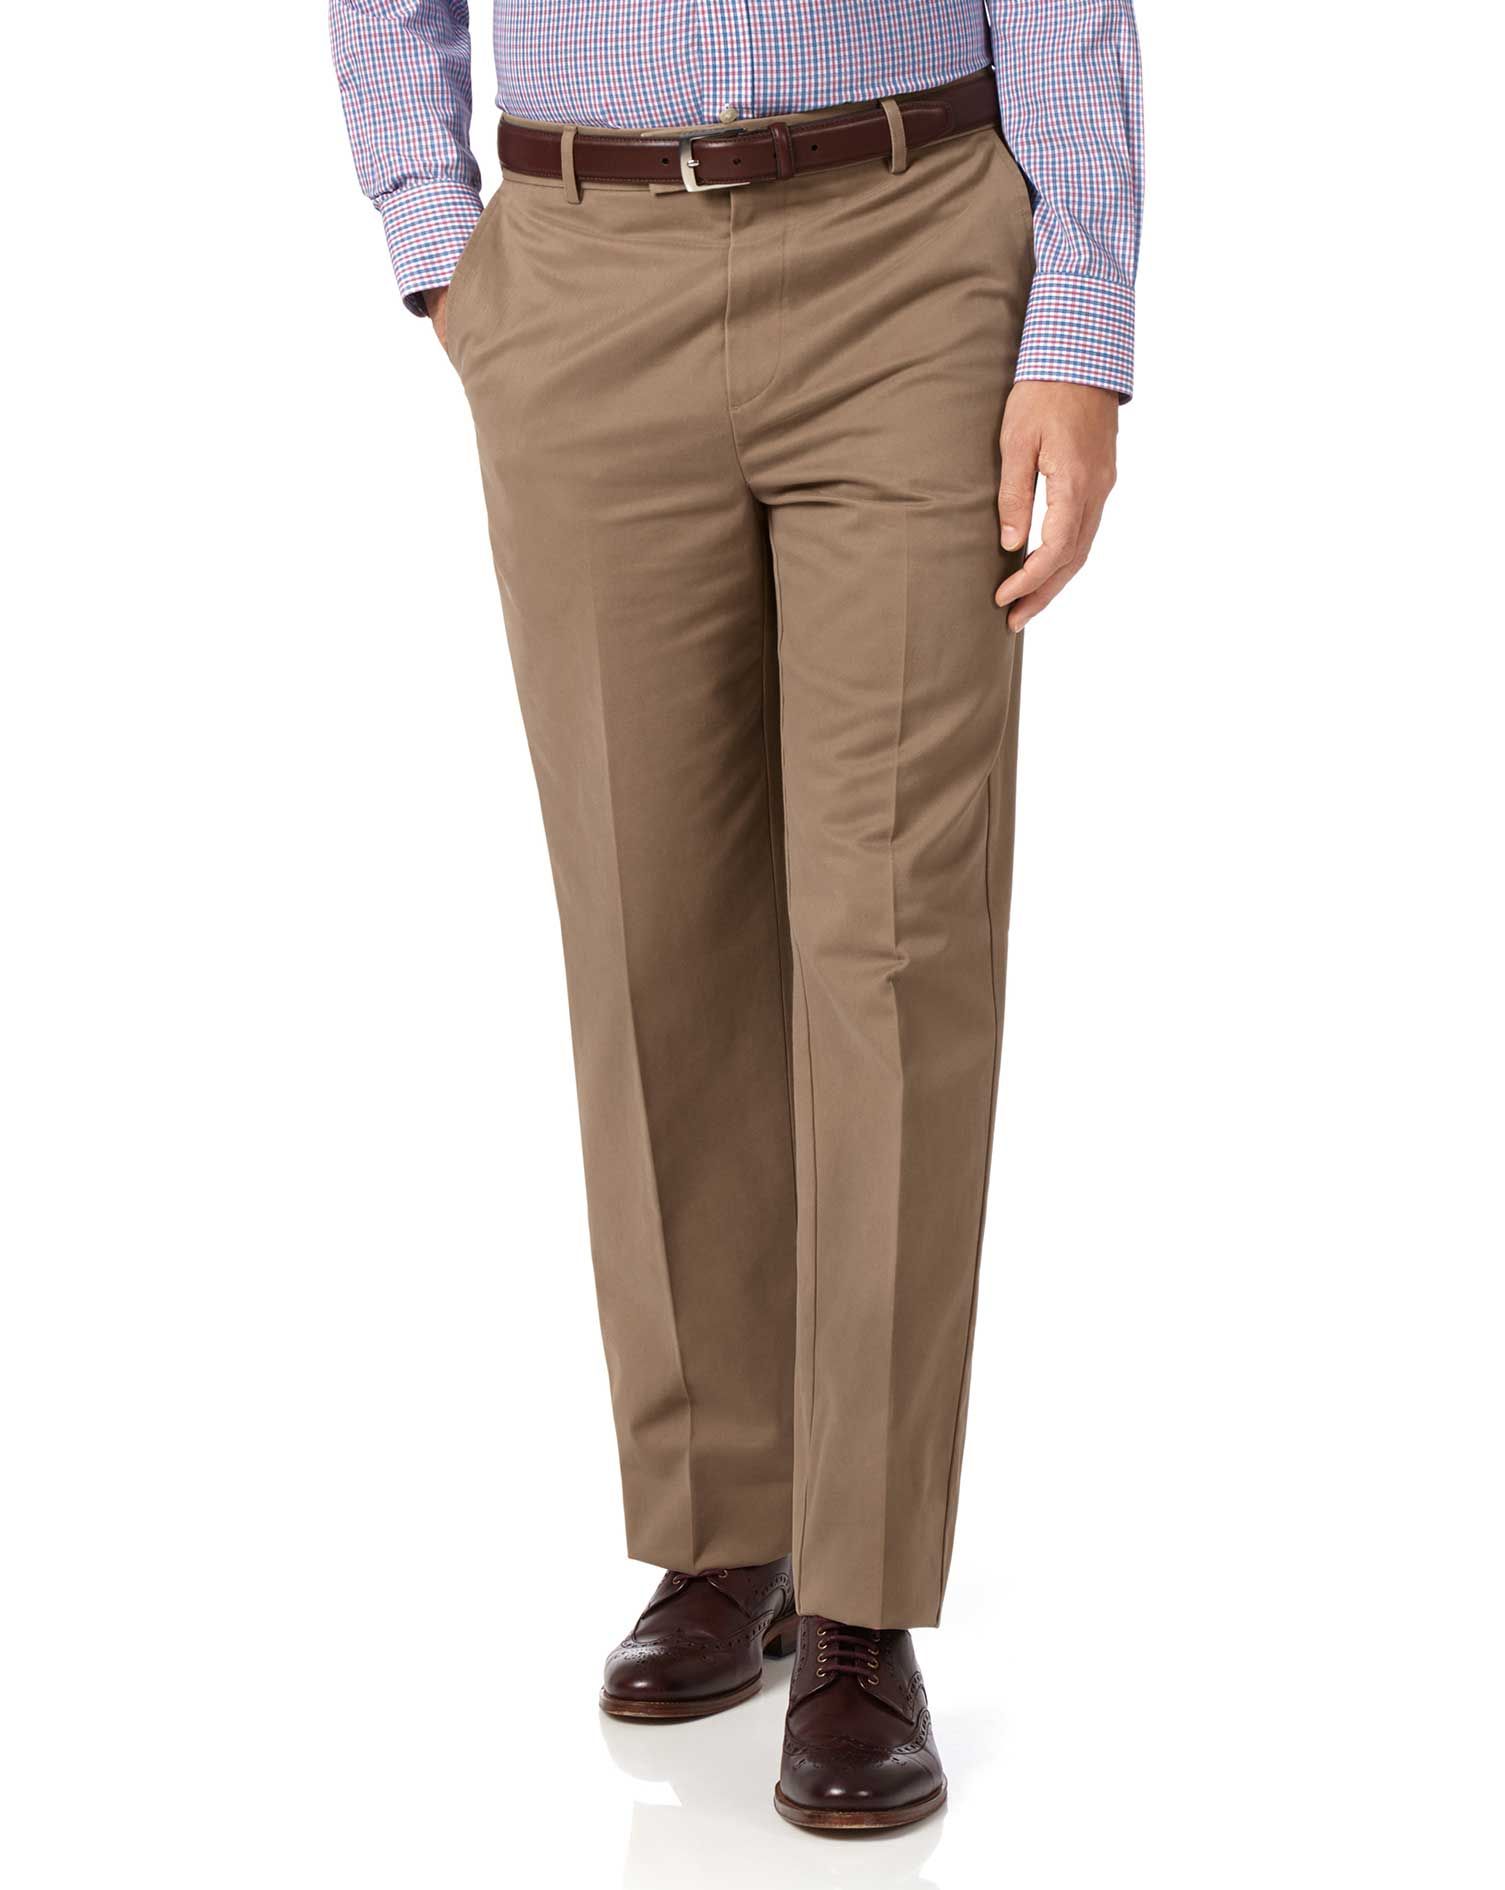 Tan Classic Fit Flat Front Non-Iron Cotton Chino Trousers Size W32 L32 by Charles Tyrwhitt